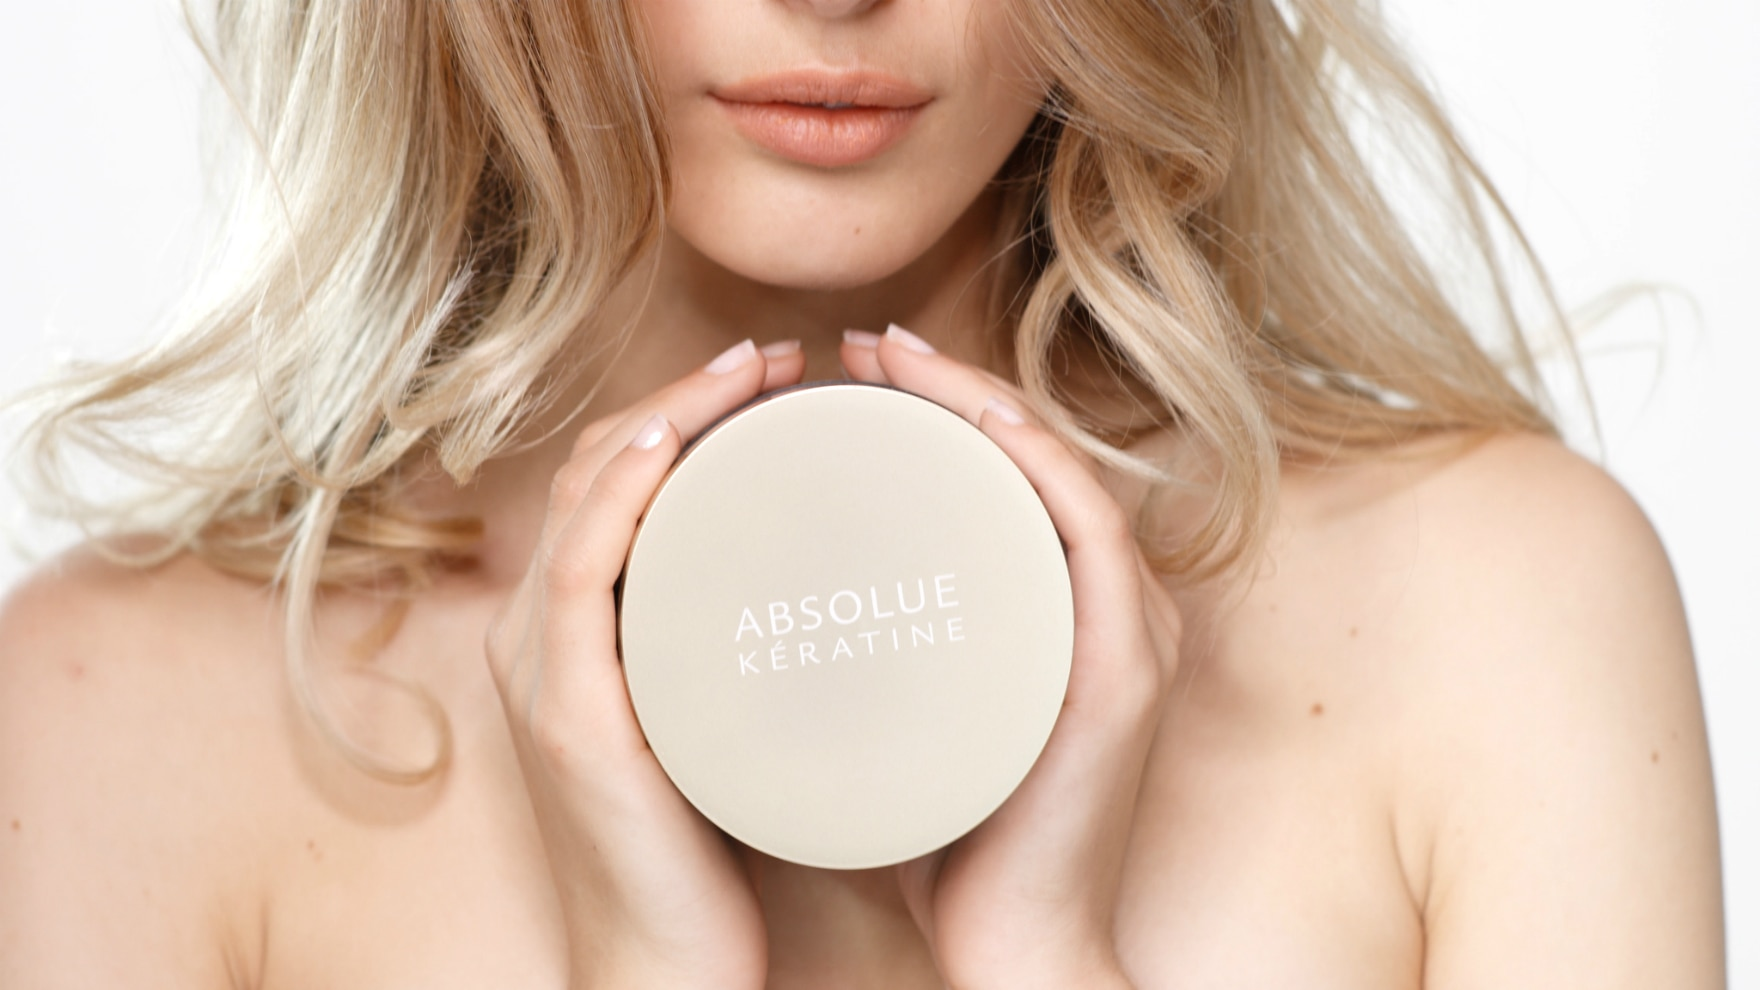 Absolue Keratine Application mask